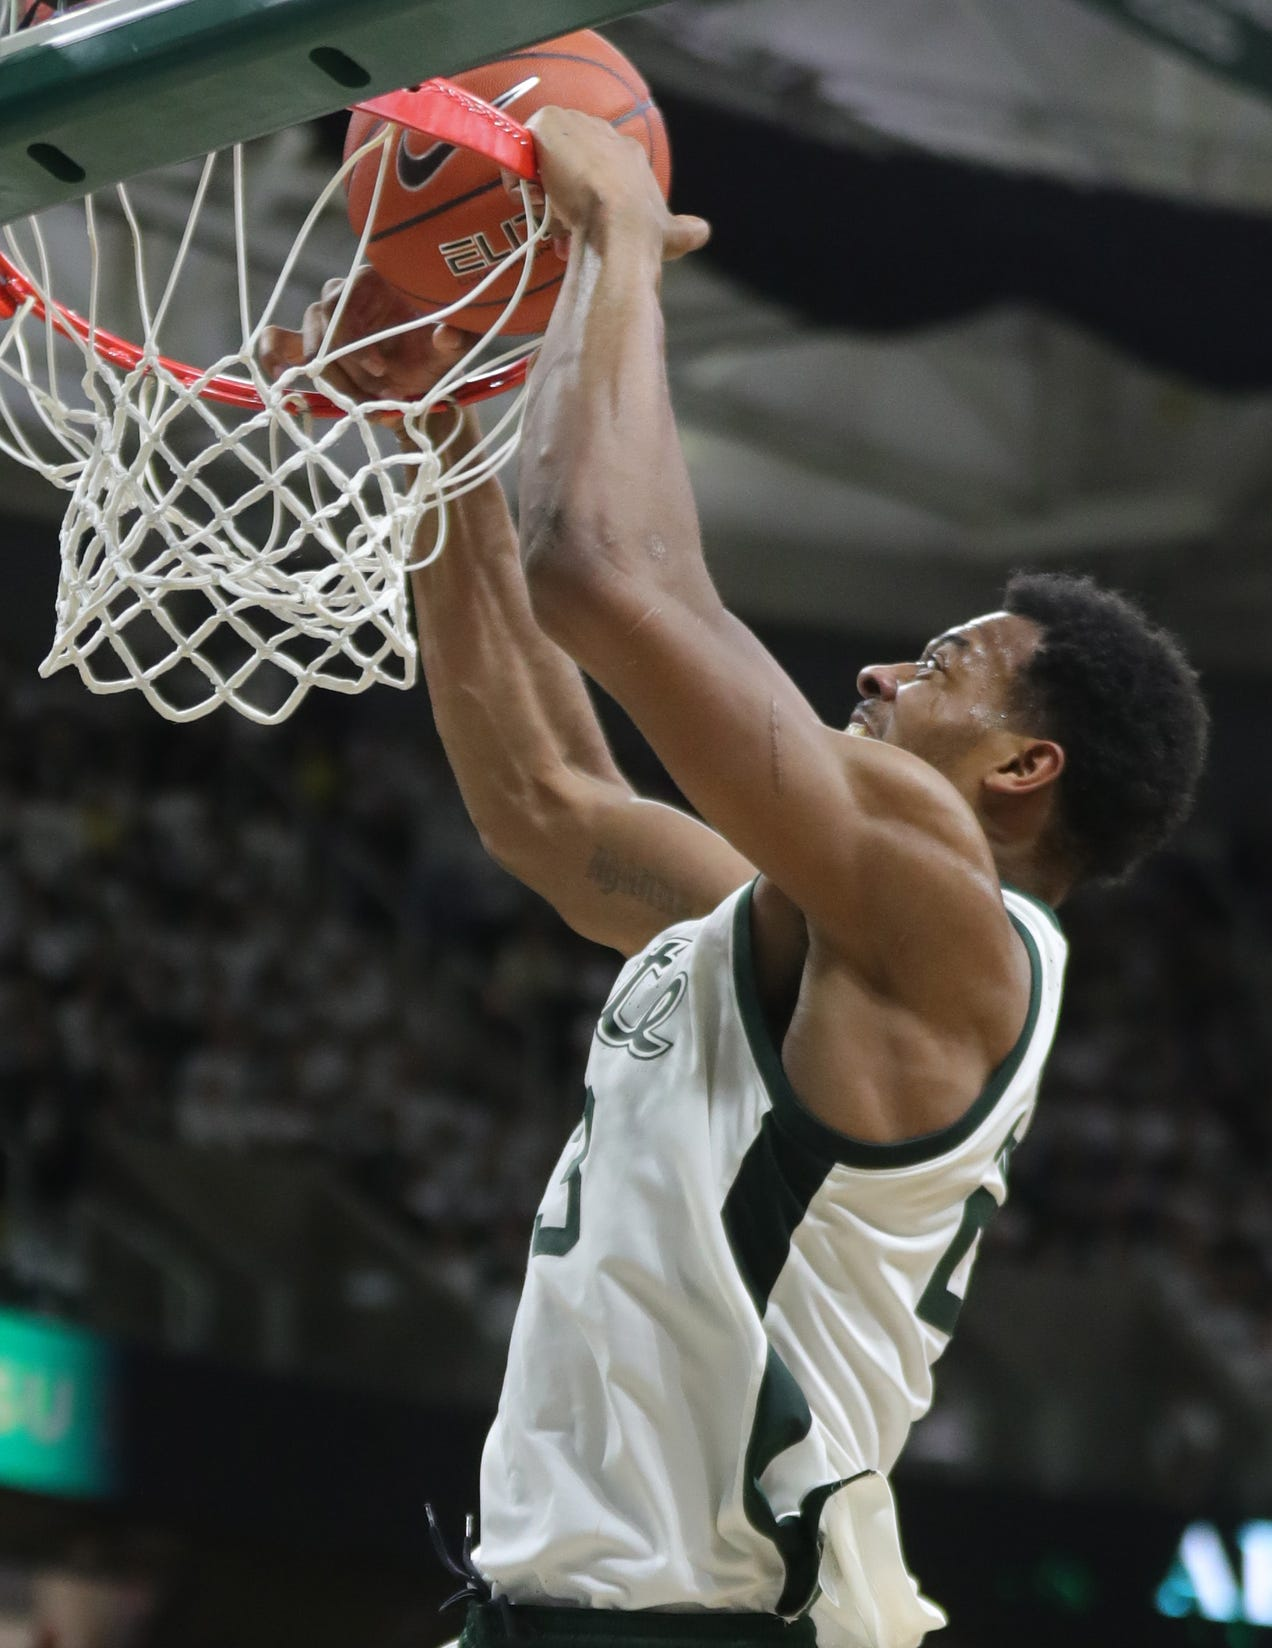 Michigan State forward Xavier Tillman scores against Michigan during second half action, Saturday, March 9, 2019 at the Breslin Center in East Lansing, Mich.